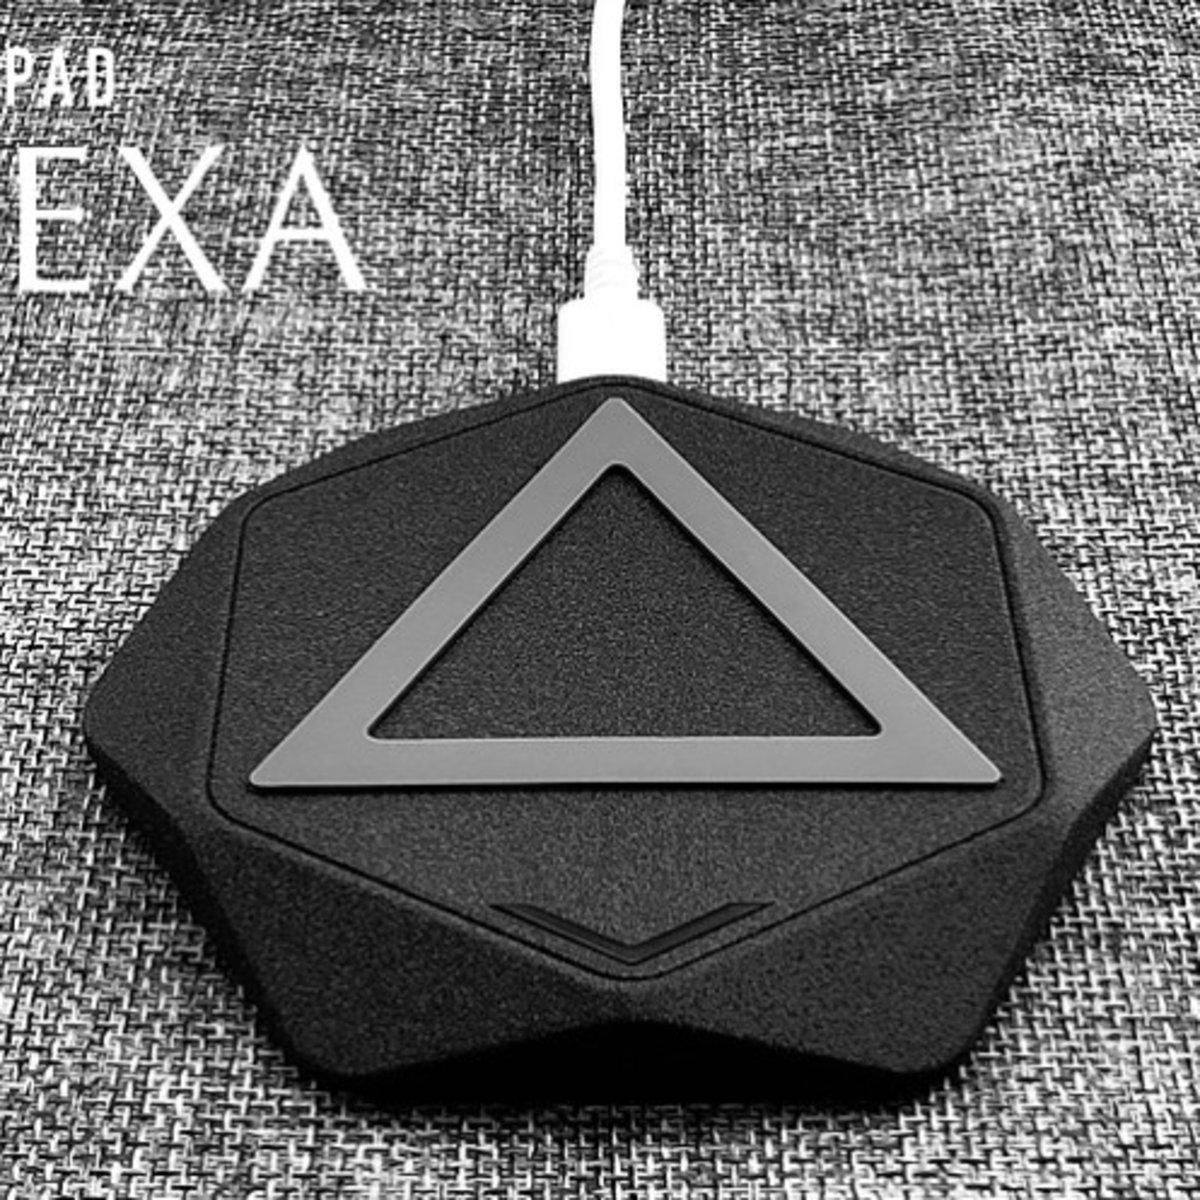 HEXA Qi Certified High Speed Wireless Charger - Black